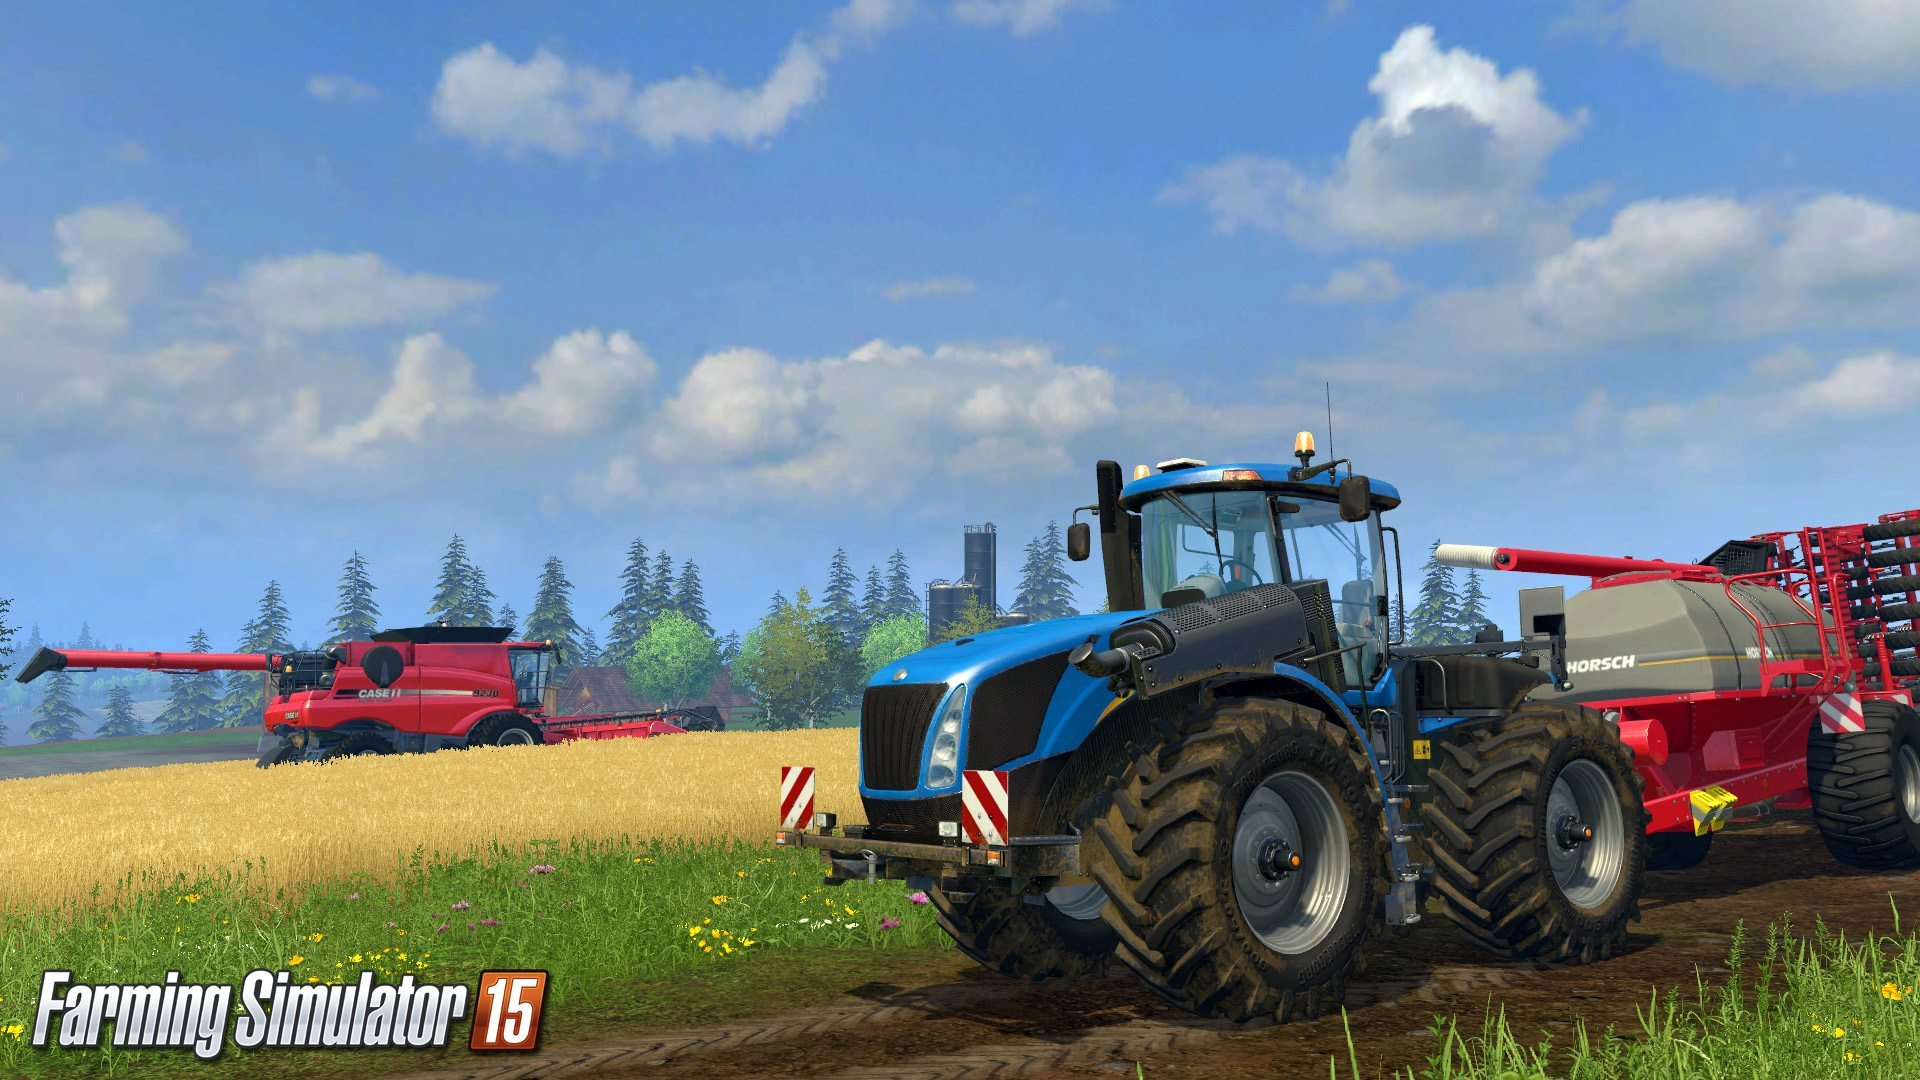 Thrustmaster Racing Wheels Now Compatible with Farming Simulator 15